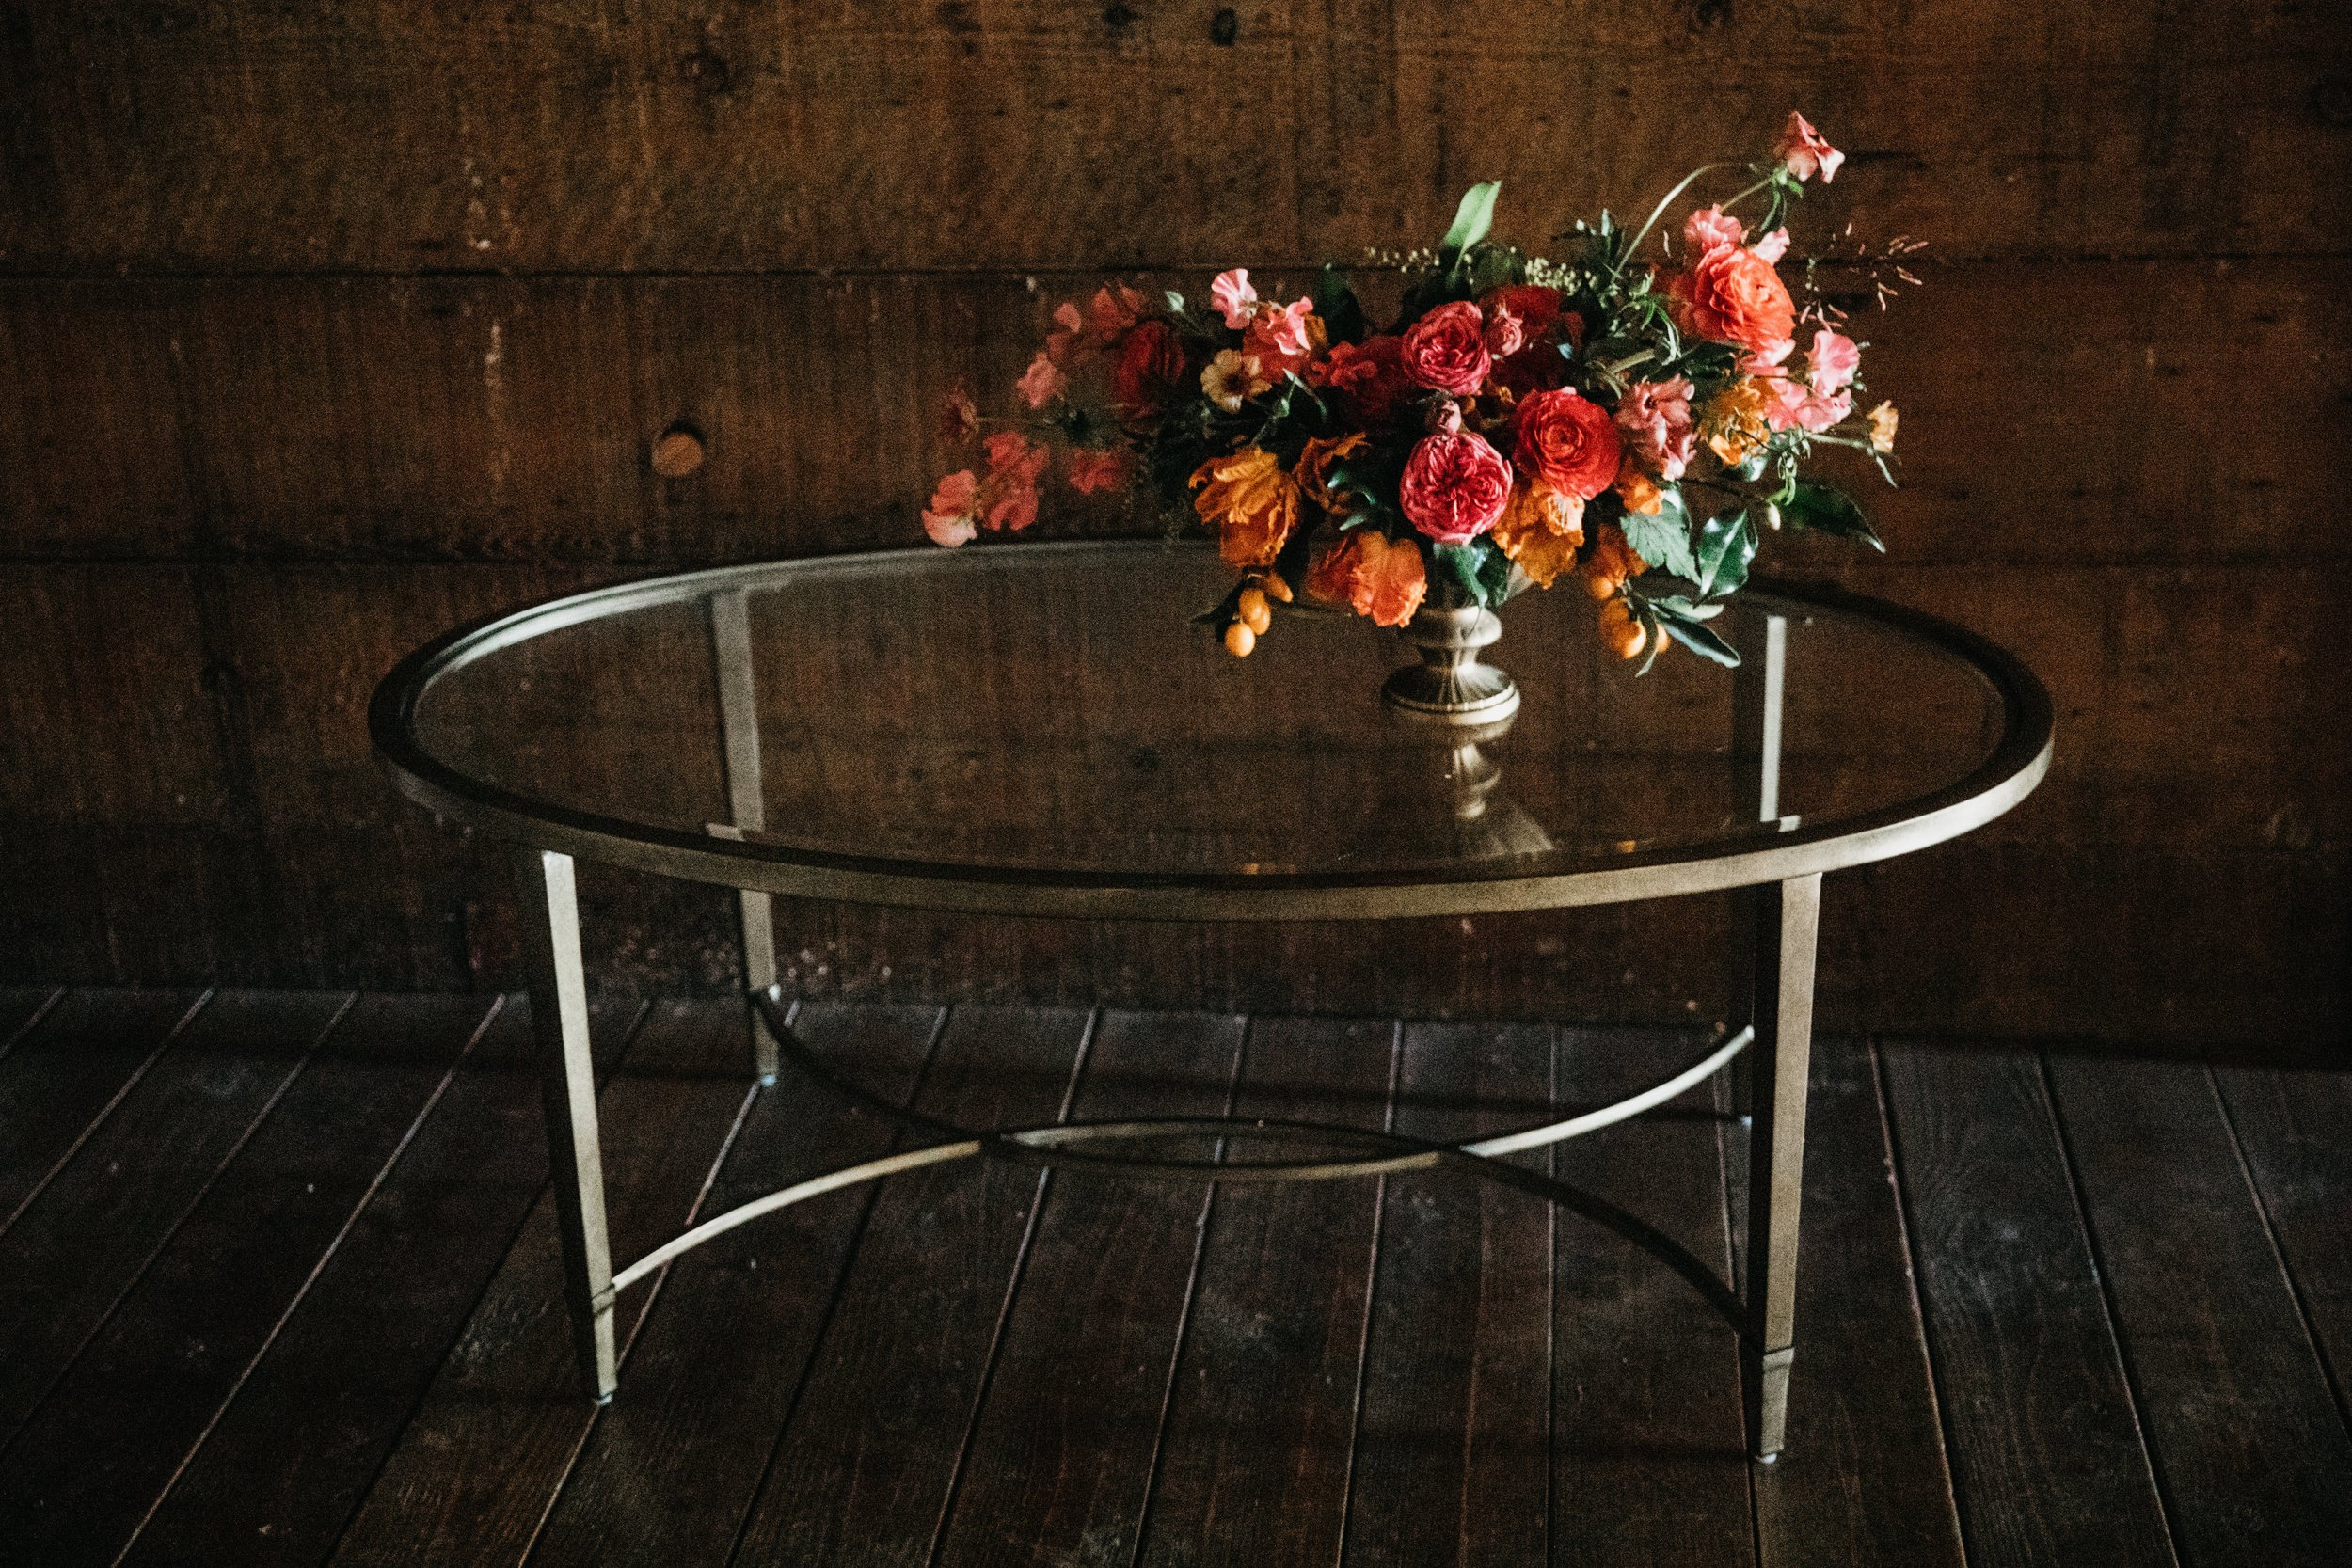 amelie glass coffee table $120 {qty 1}